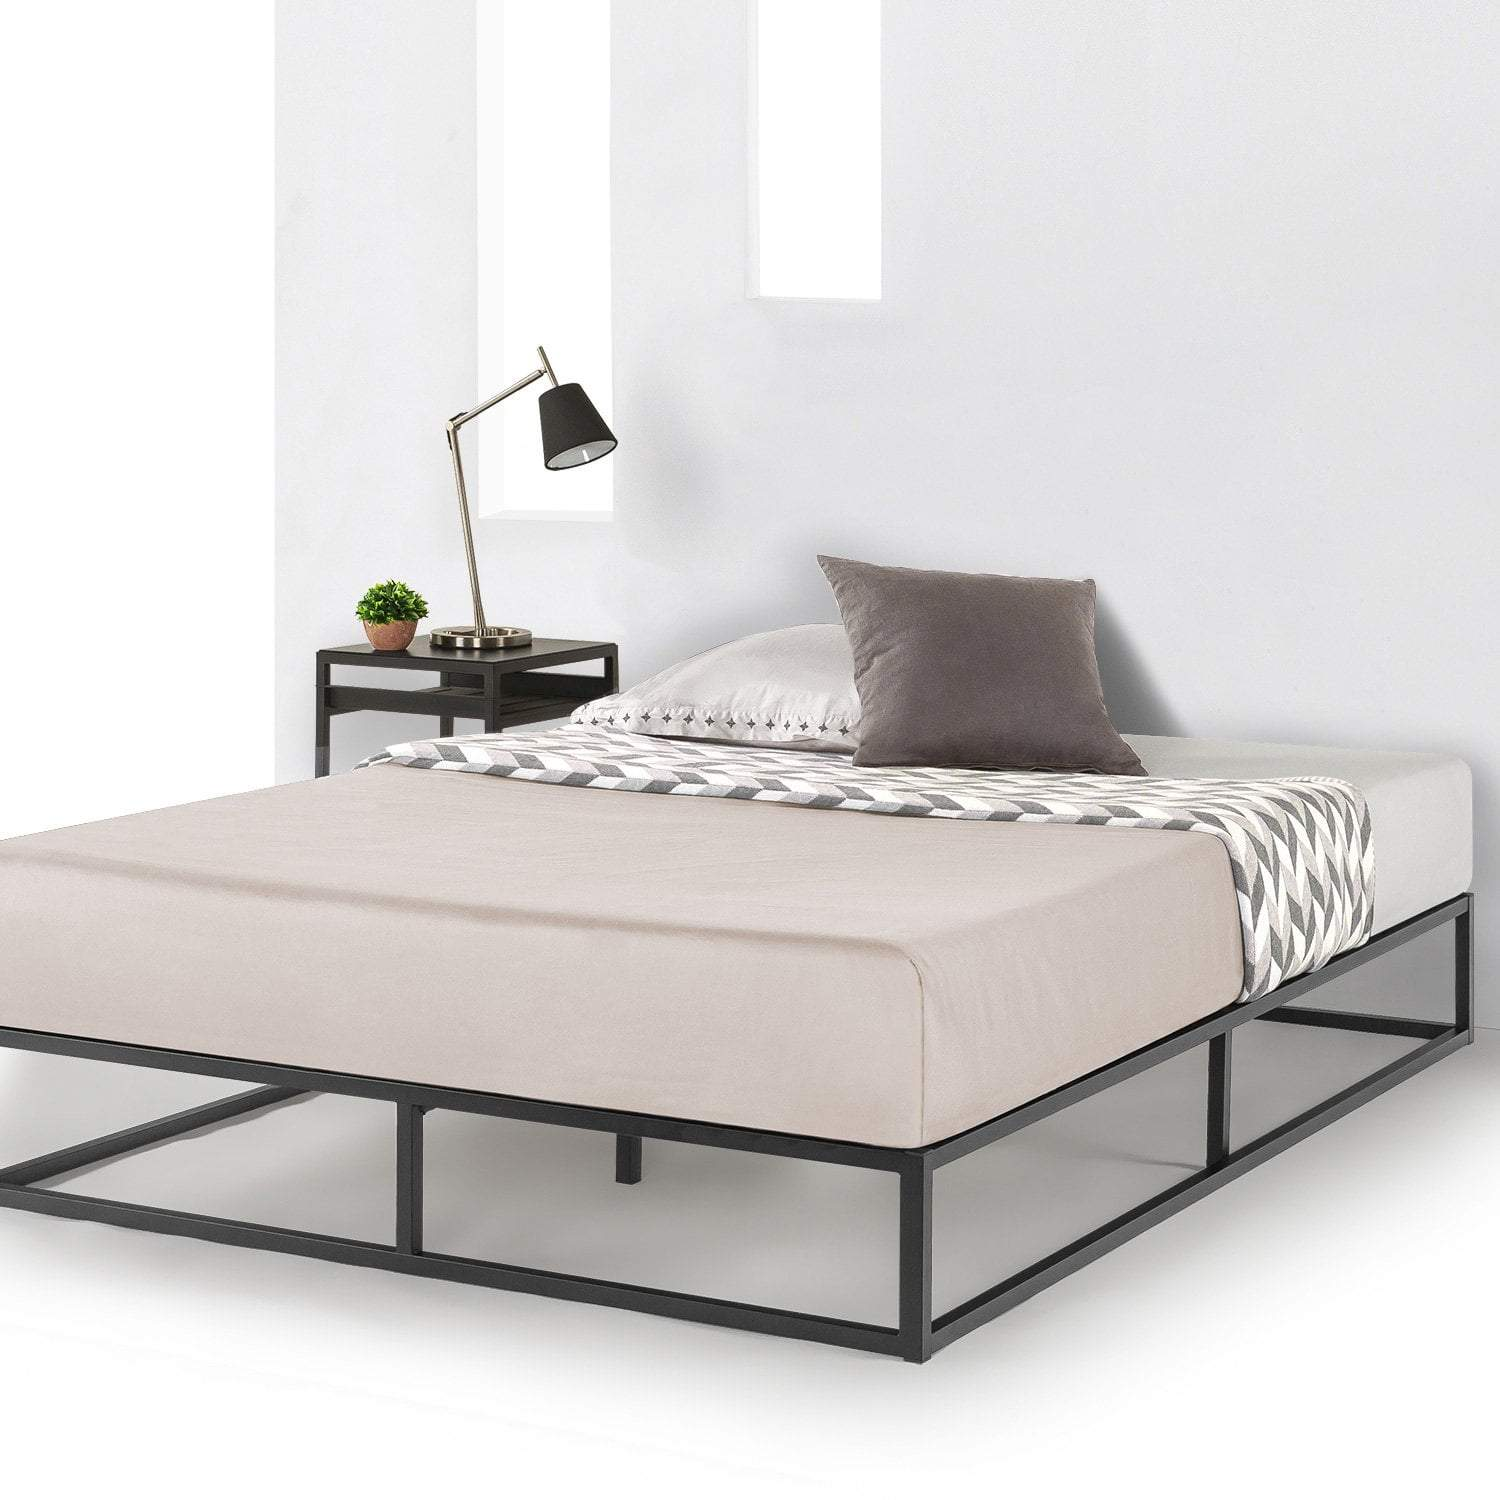 Modernista 10 Modern Low Profile Metal Bed Frame Mellow Home